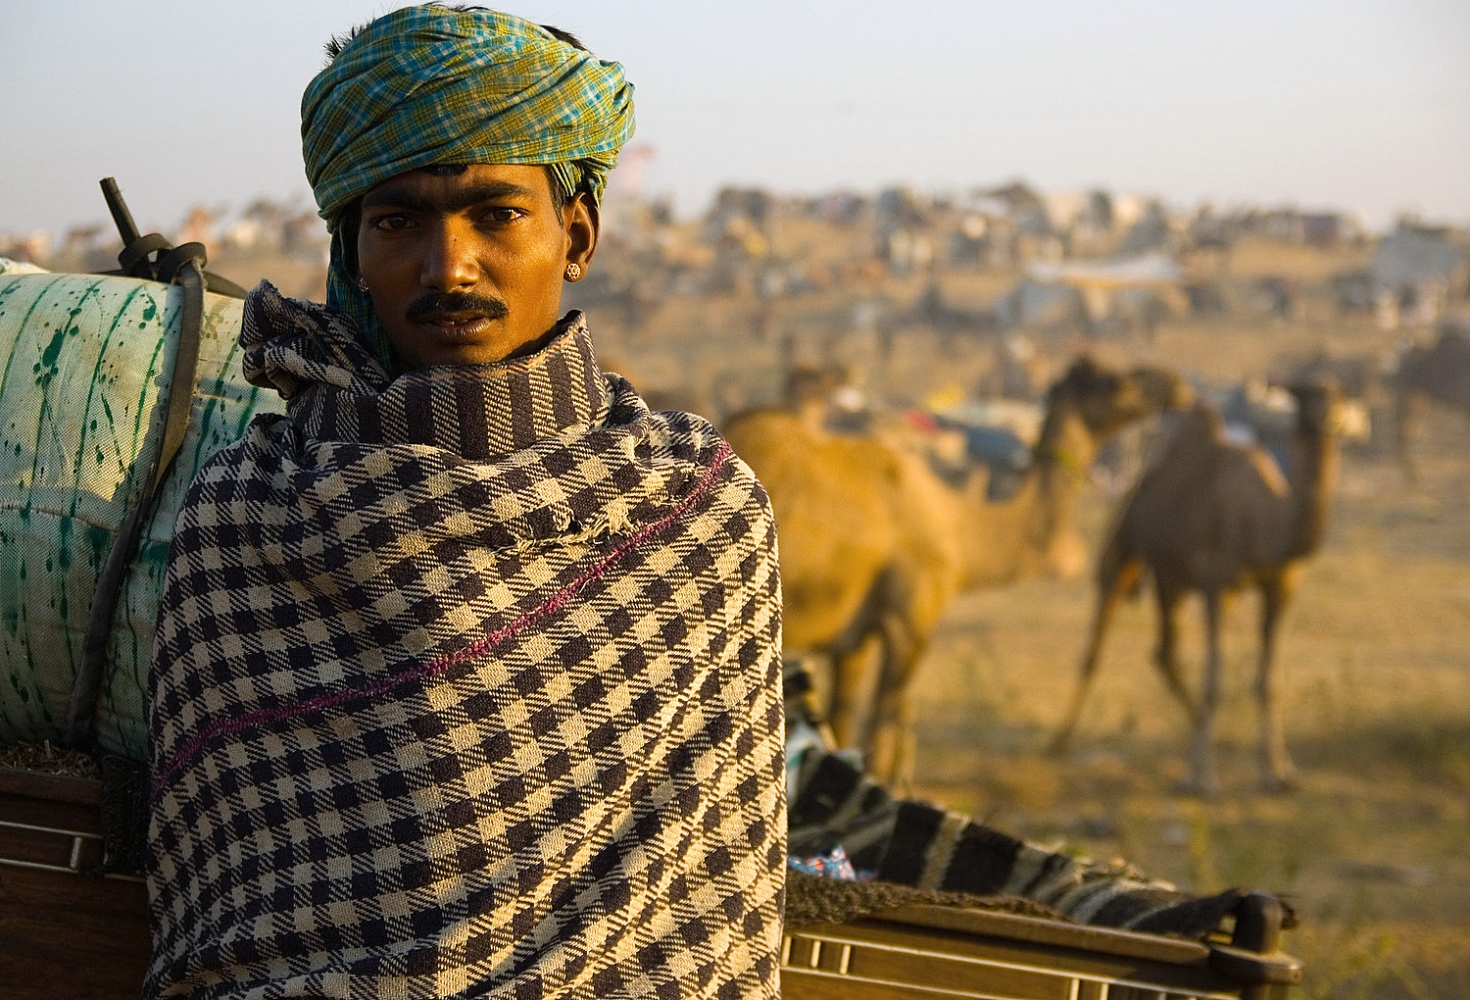 The Camel Herder. Pushkar